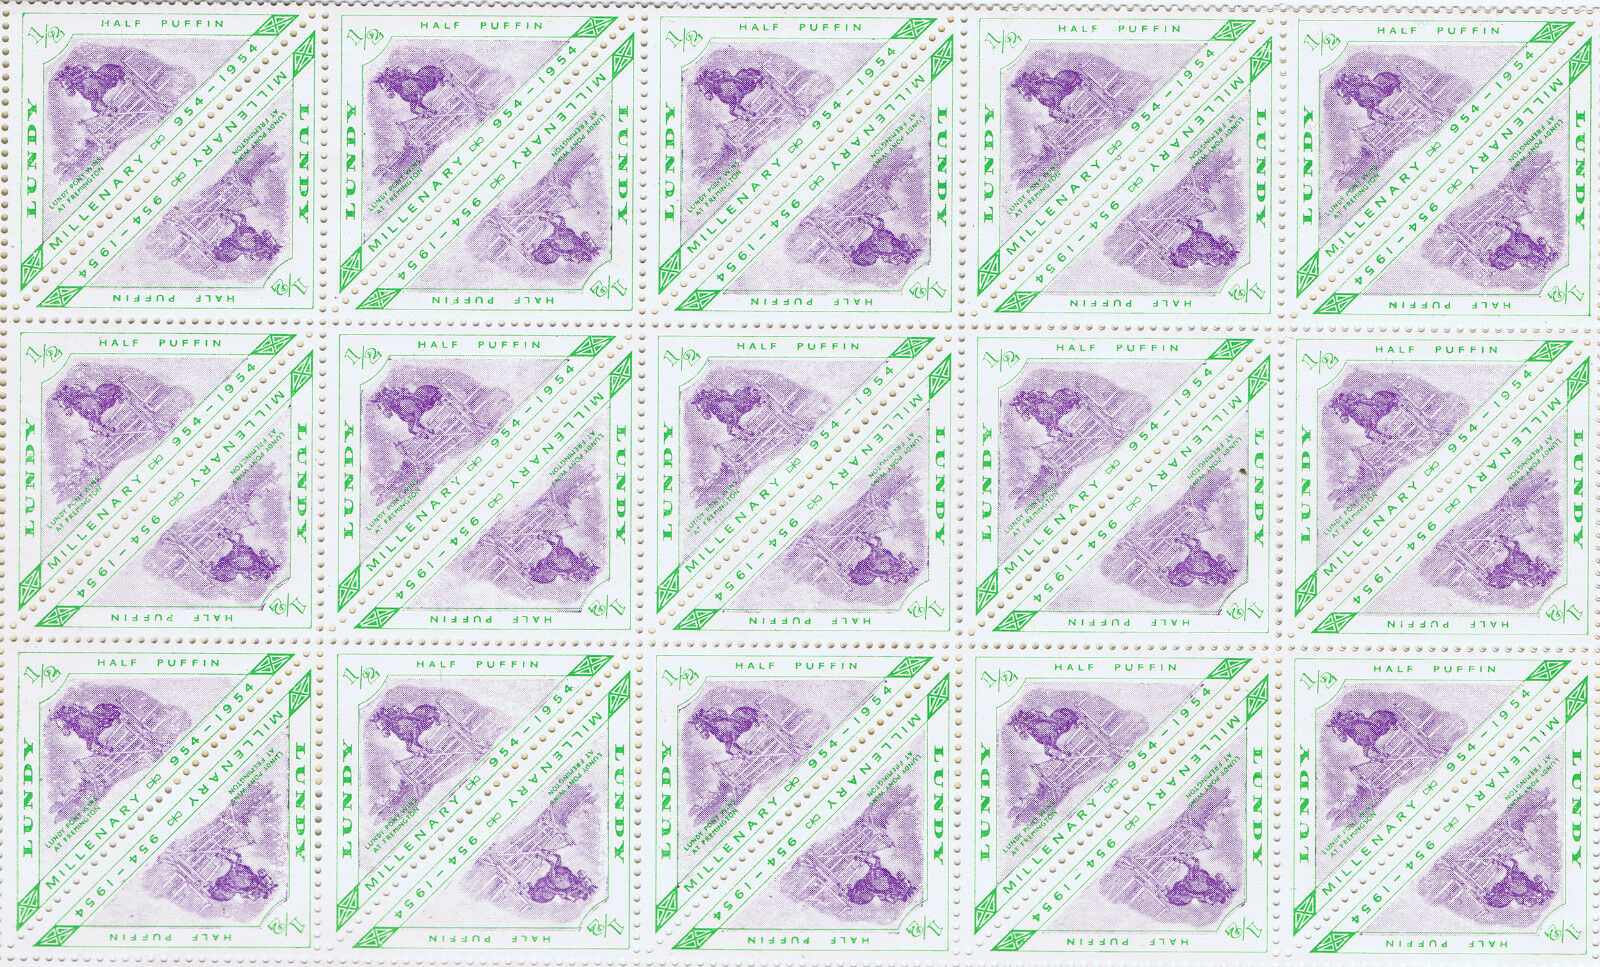 WHOLESALE 500 LUNDY MILLENARY 954 - 1954 PONY WINS at FREMINGTON 1/2 PUFFIN MNH